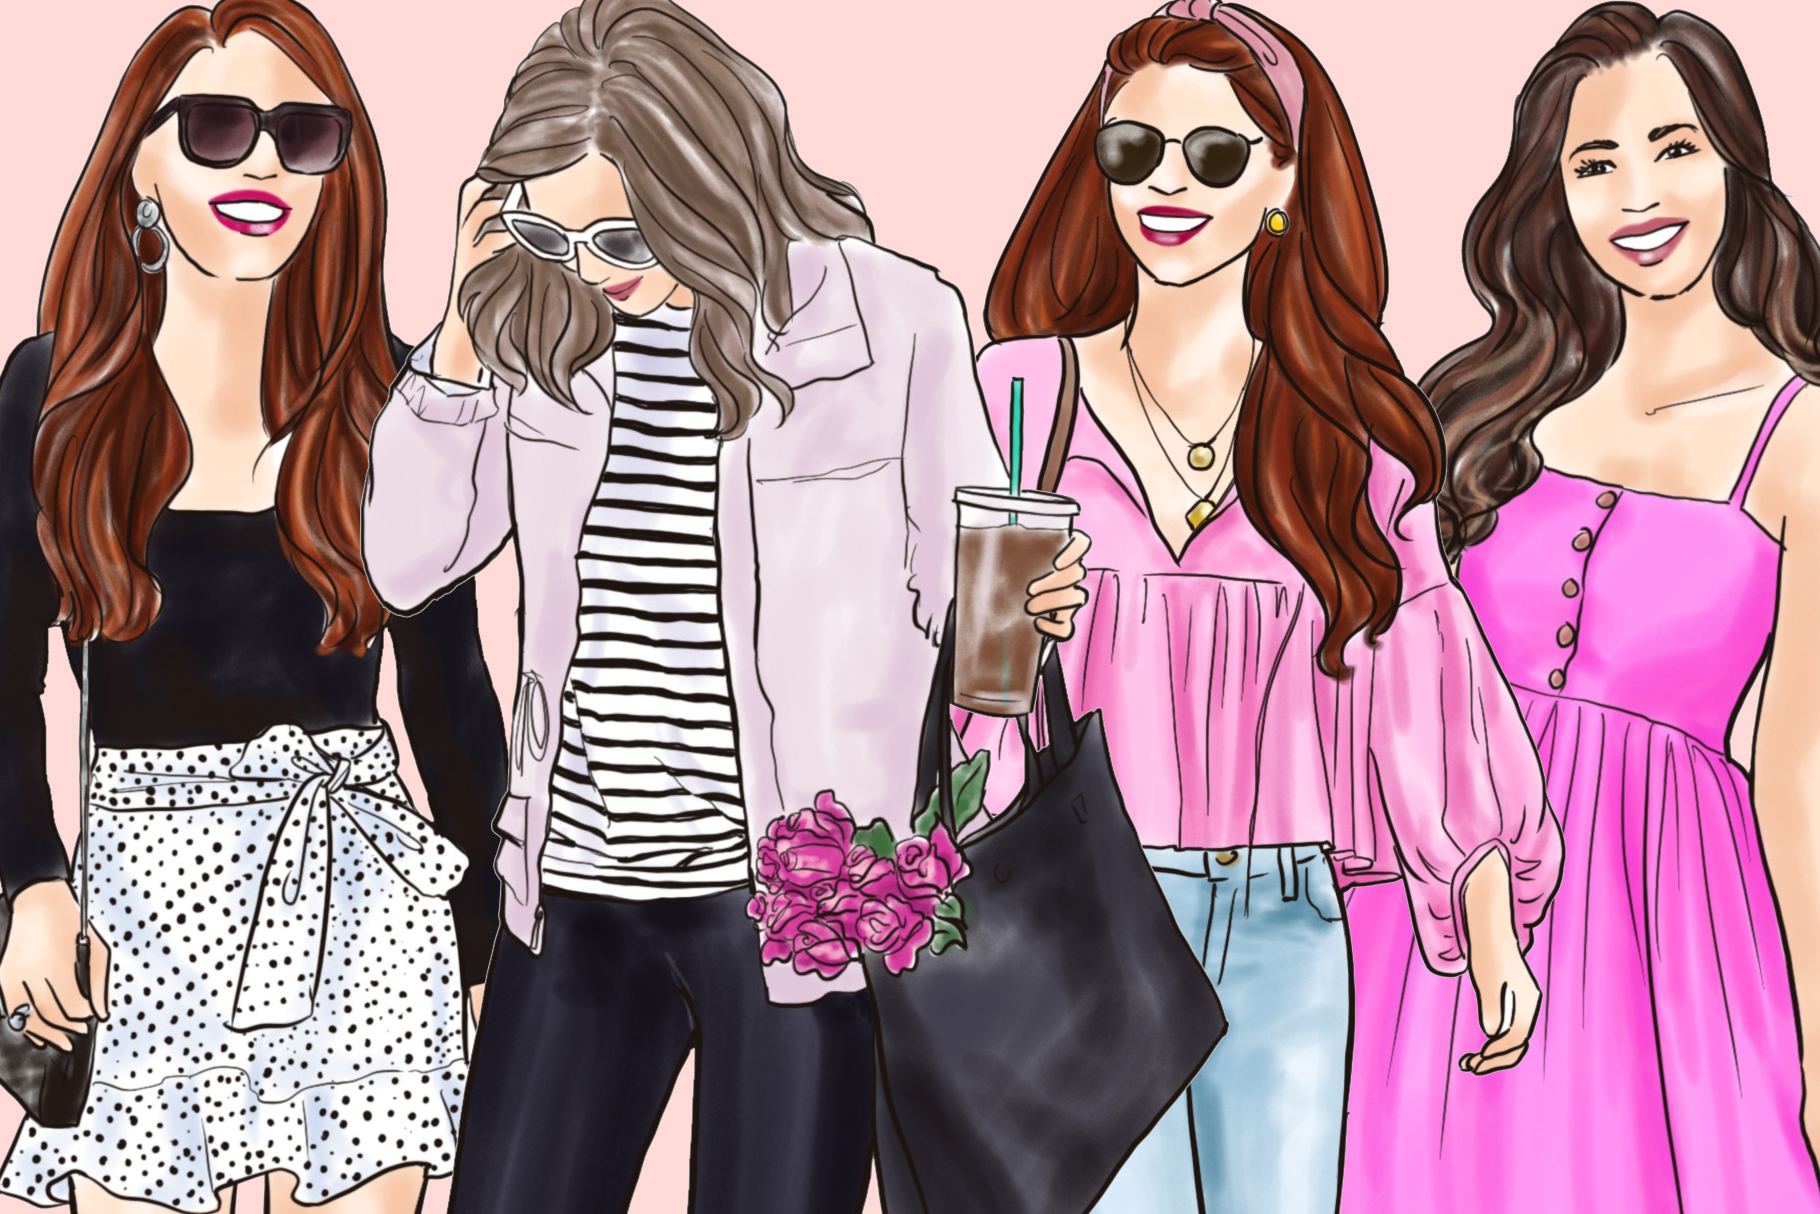 Fashion illustration clipart - Girls in Black & Pink - Light example image 3